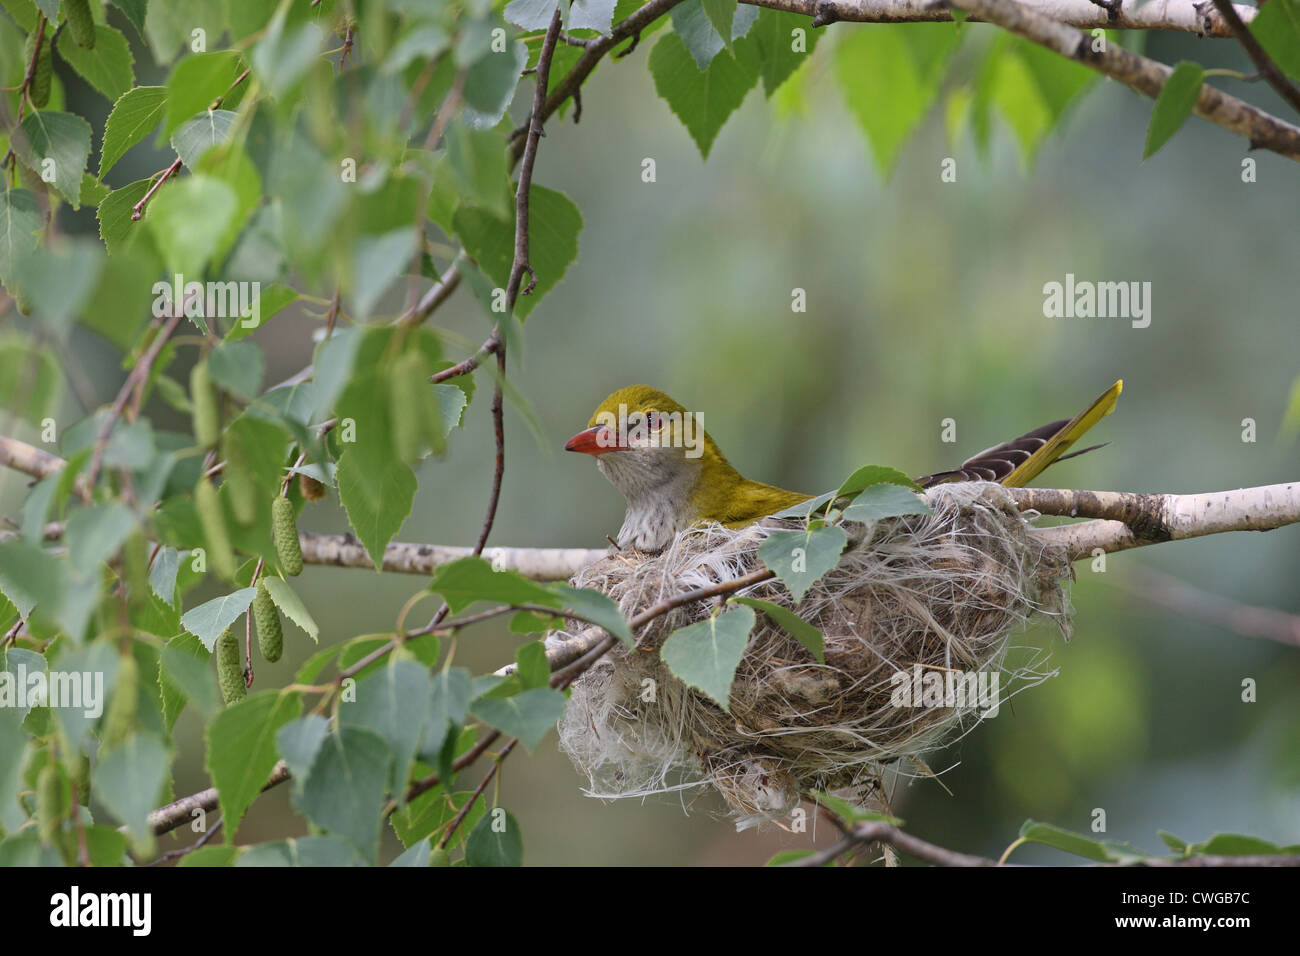 Golden Oriole (Oriolus oriolus), female at the nest on a birch branch, Bulgaria - Stock Image